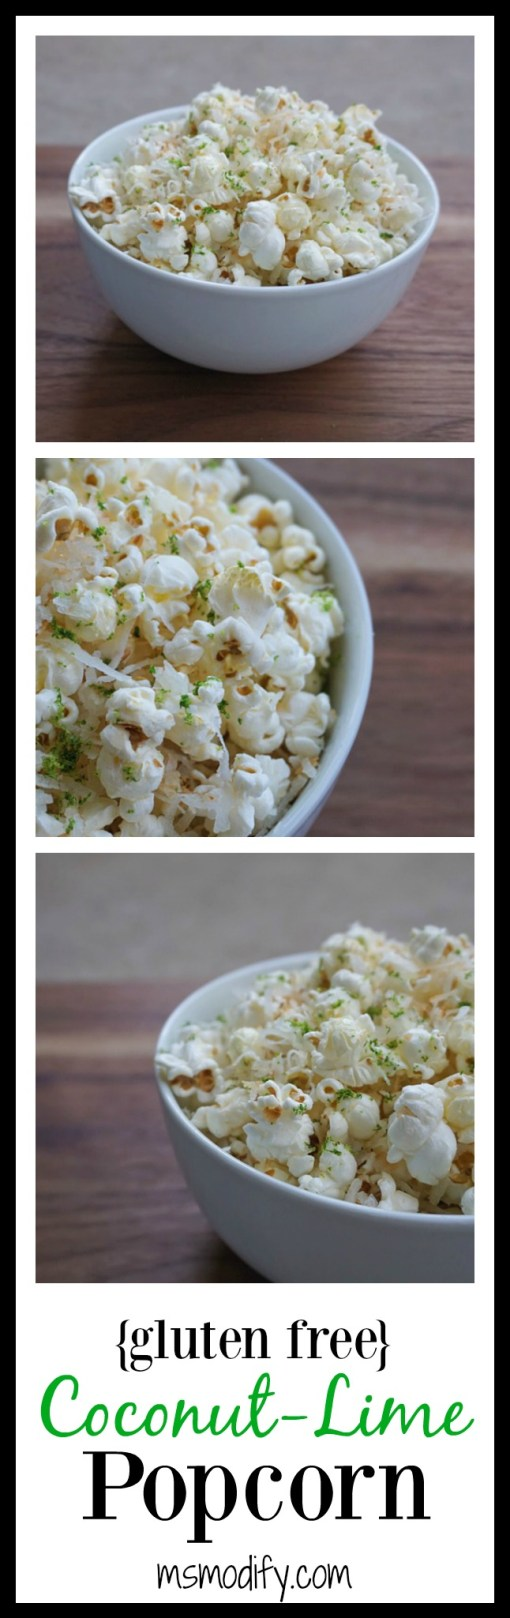 coconut lime popcorn